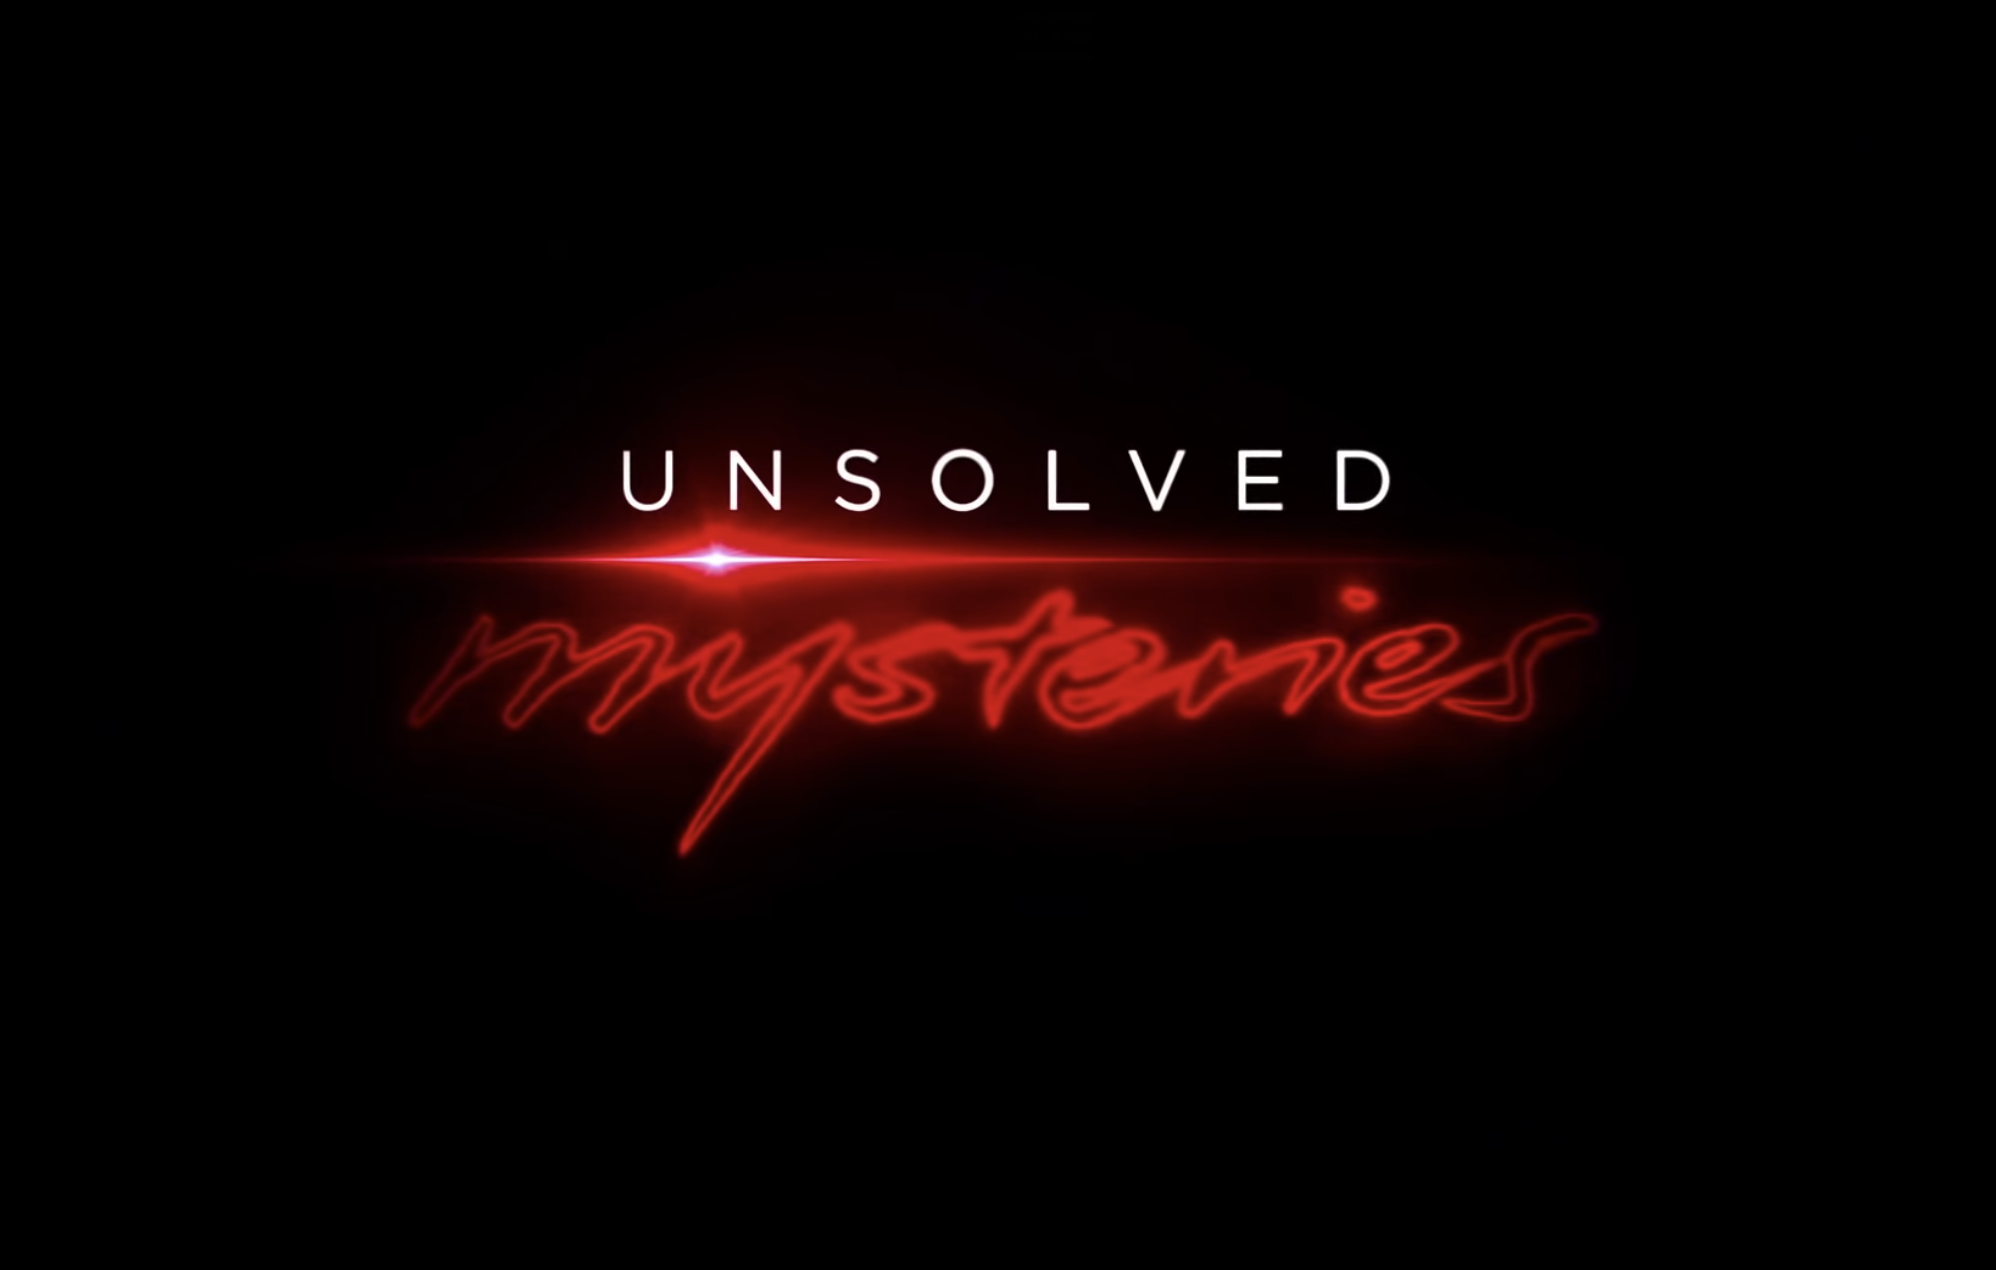 Unsolved Mysteries First Look: Netflix reveals trailer and titles for series revival